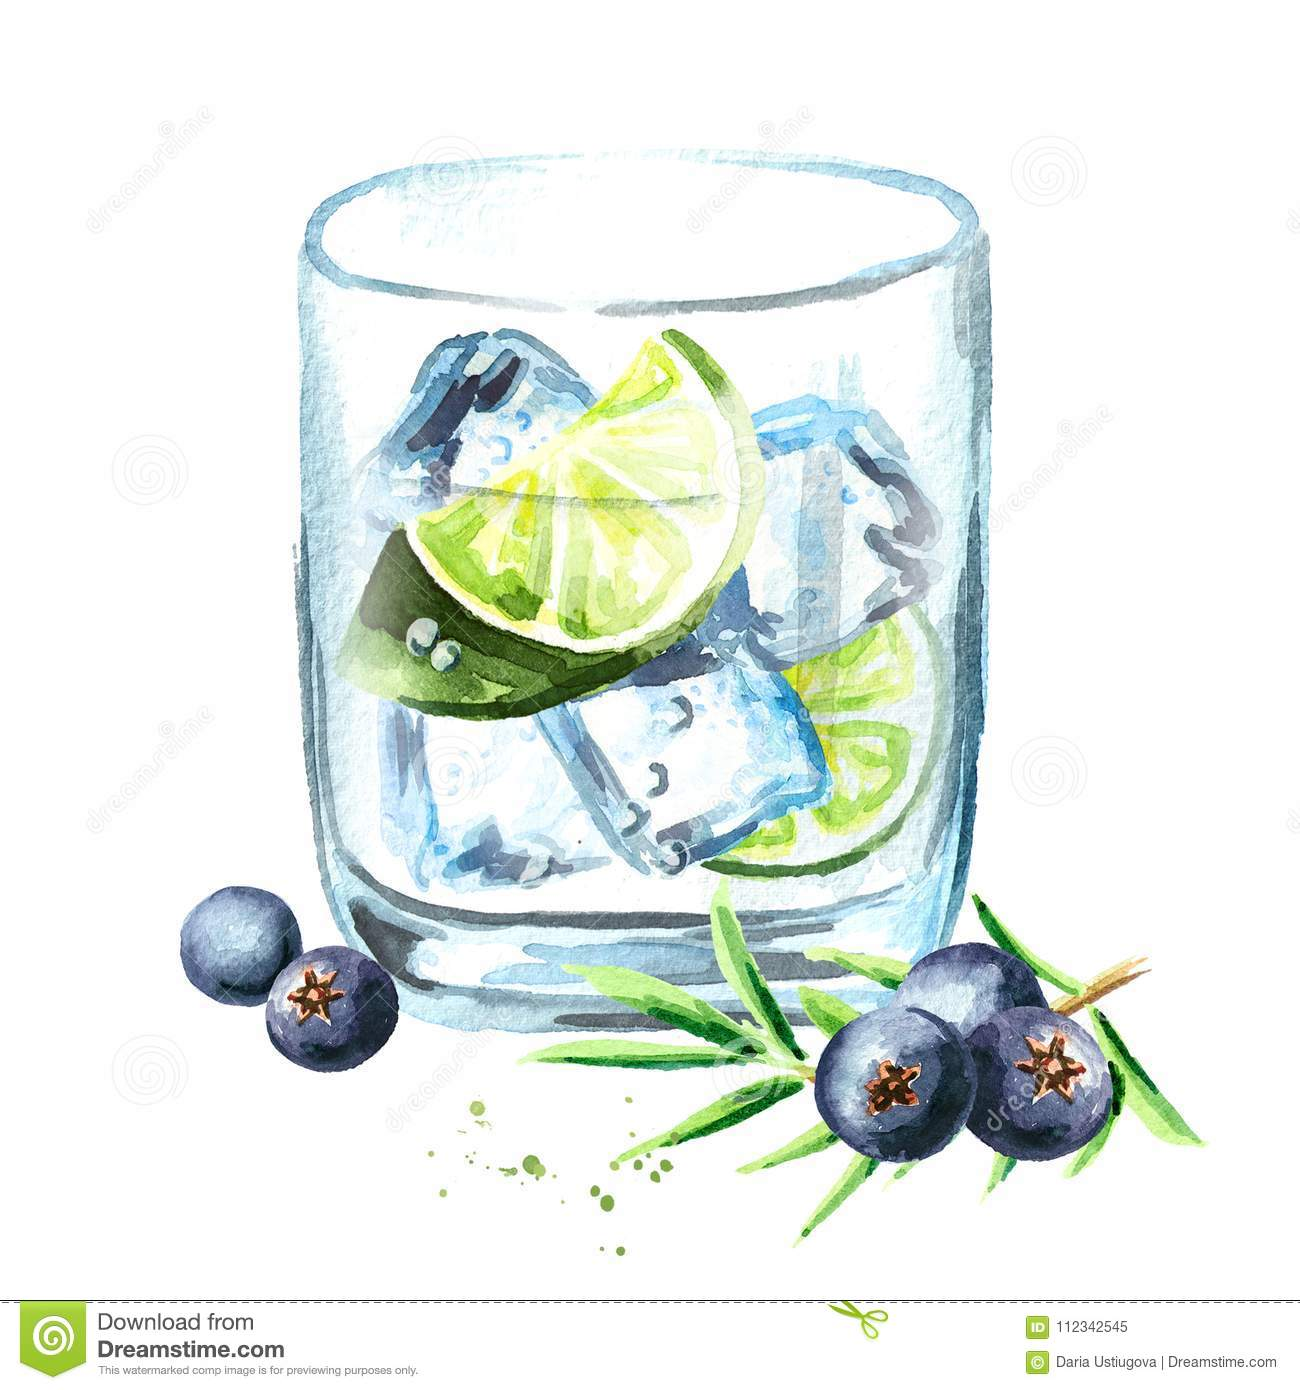 Gin tonik with ice cubes, lime slice and juniper berries. Watercolor hand drawn illustration, isolated on white background.